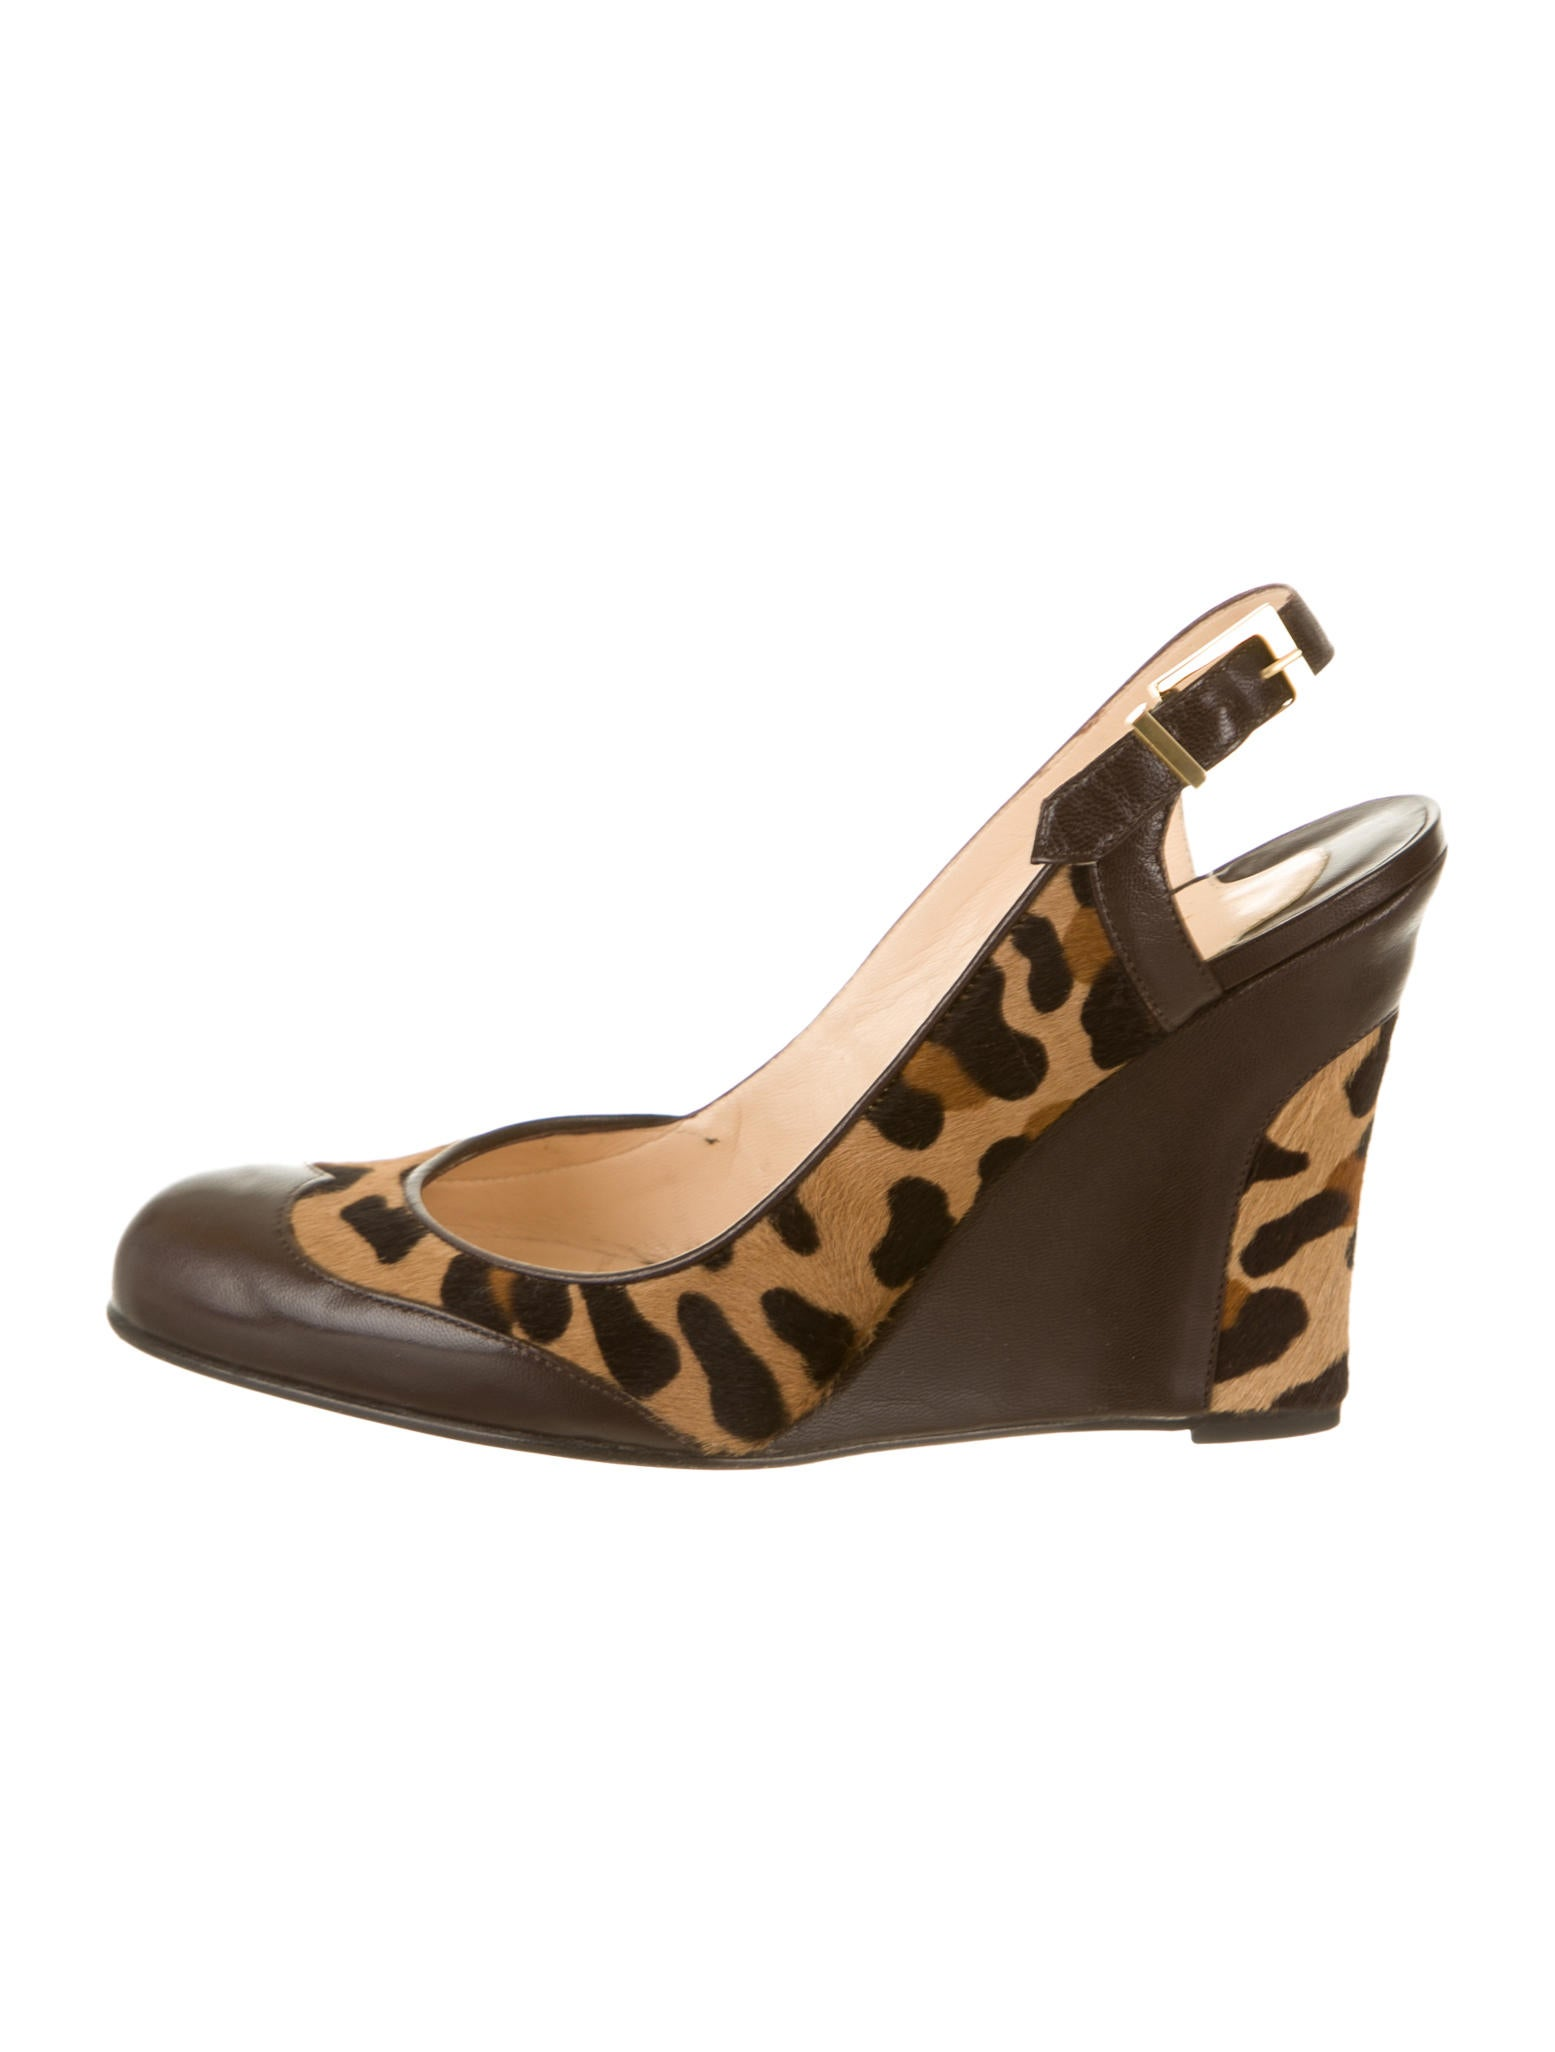 christian louboutin semi-pointed toe wedges Brown leather and ...